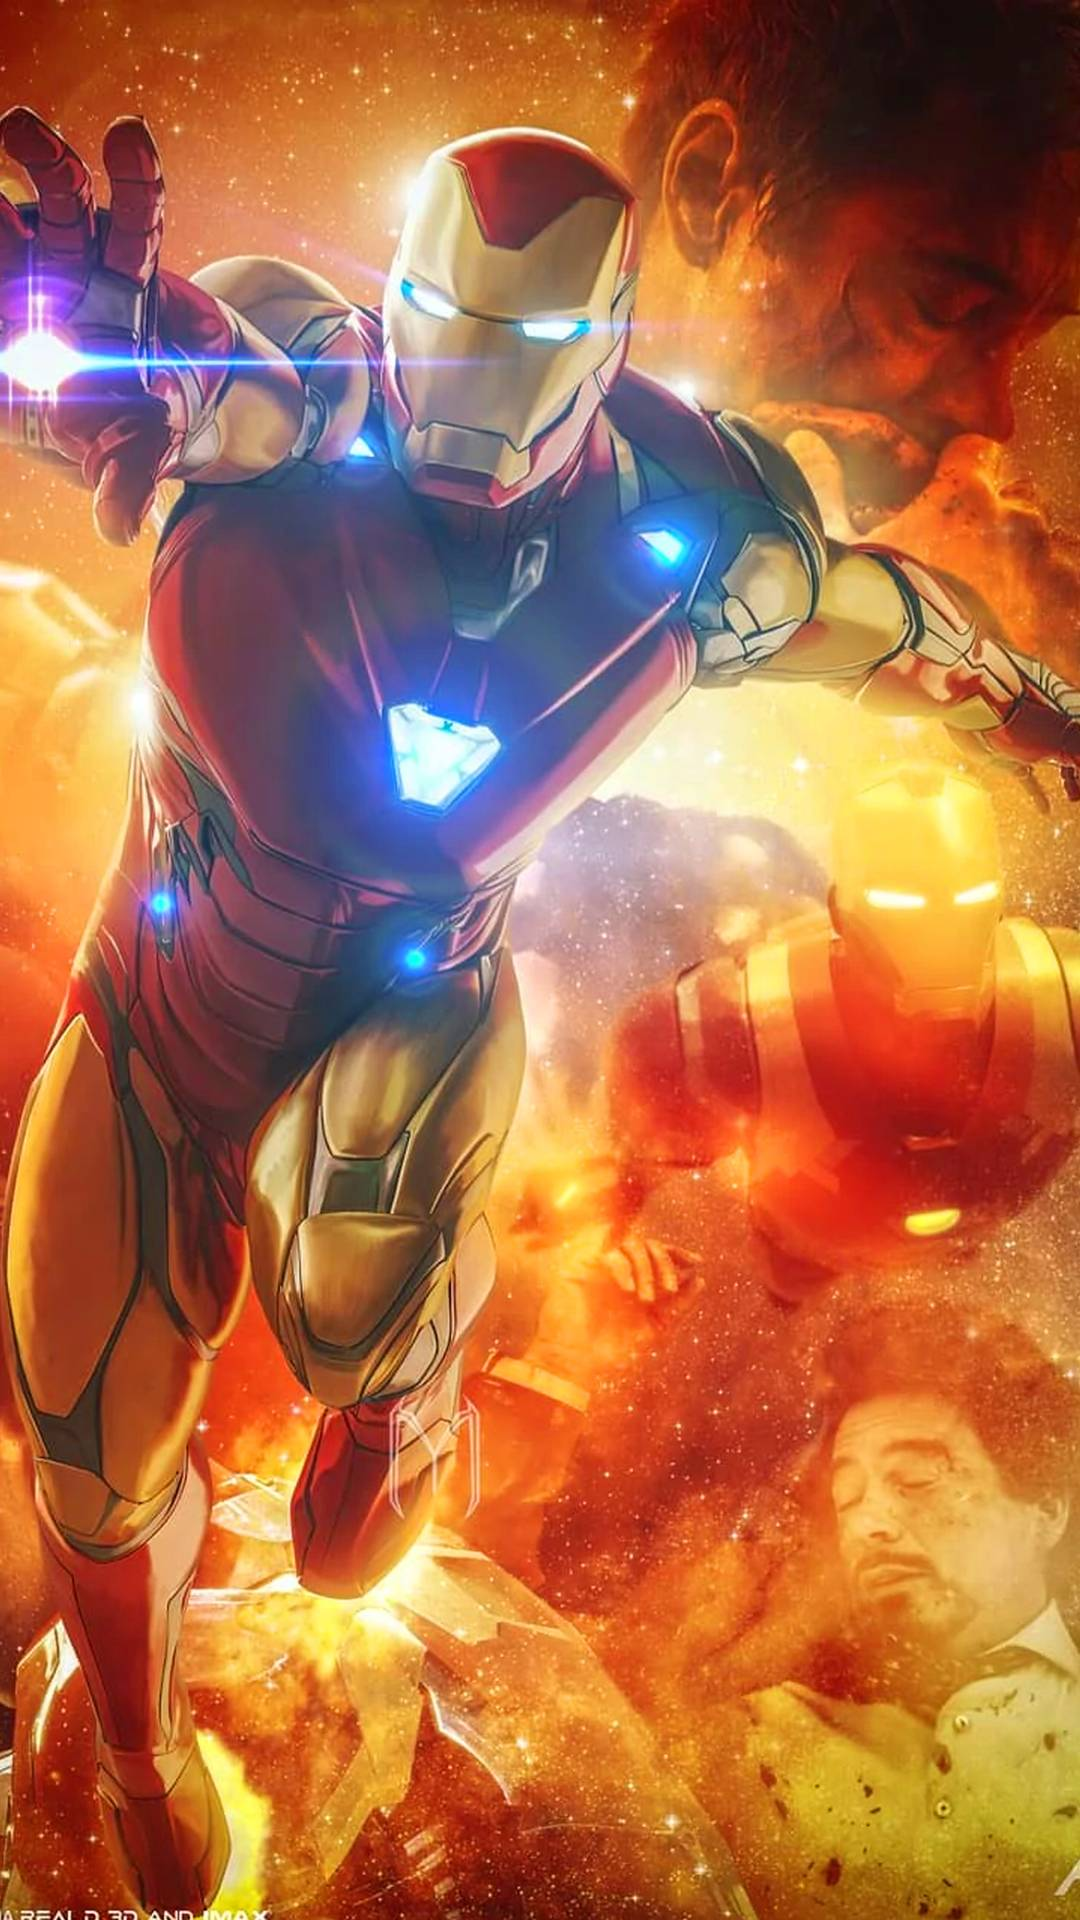 Iphone Wallpapers Com Endgame Iron Man Iphone Wallpaper Iphone Wallpapers